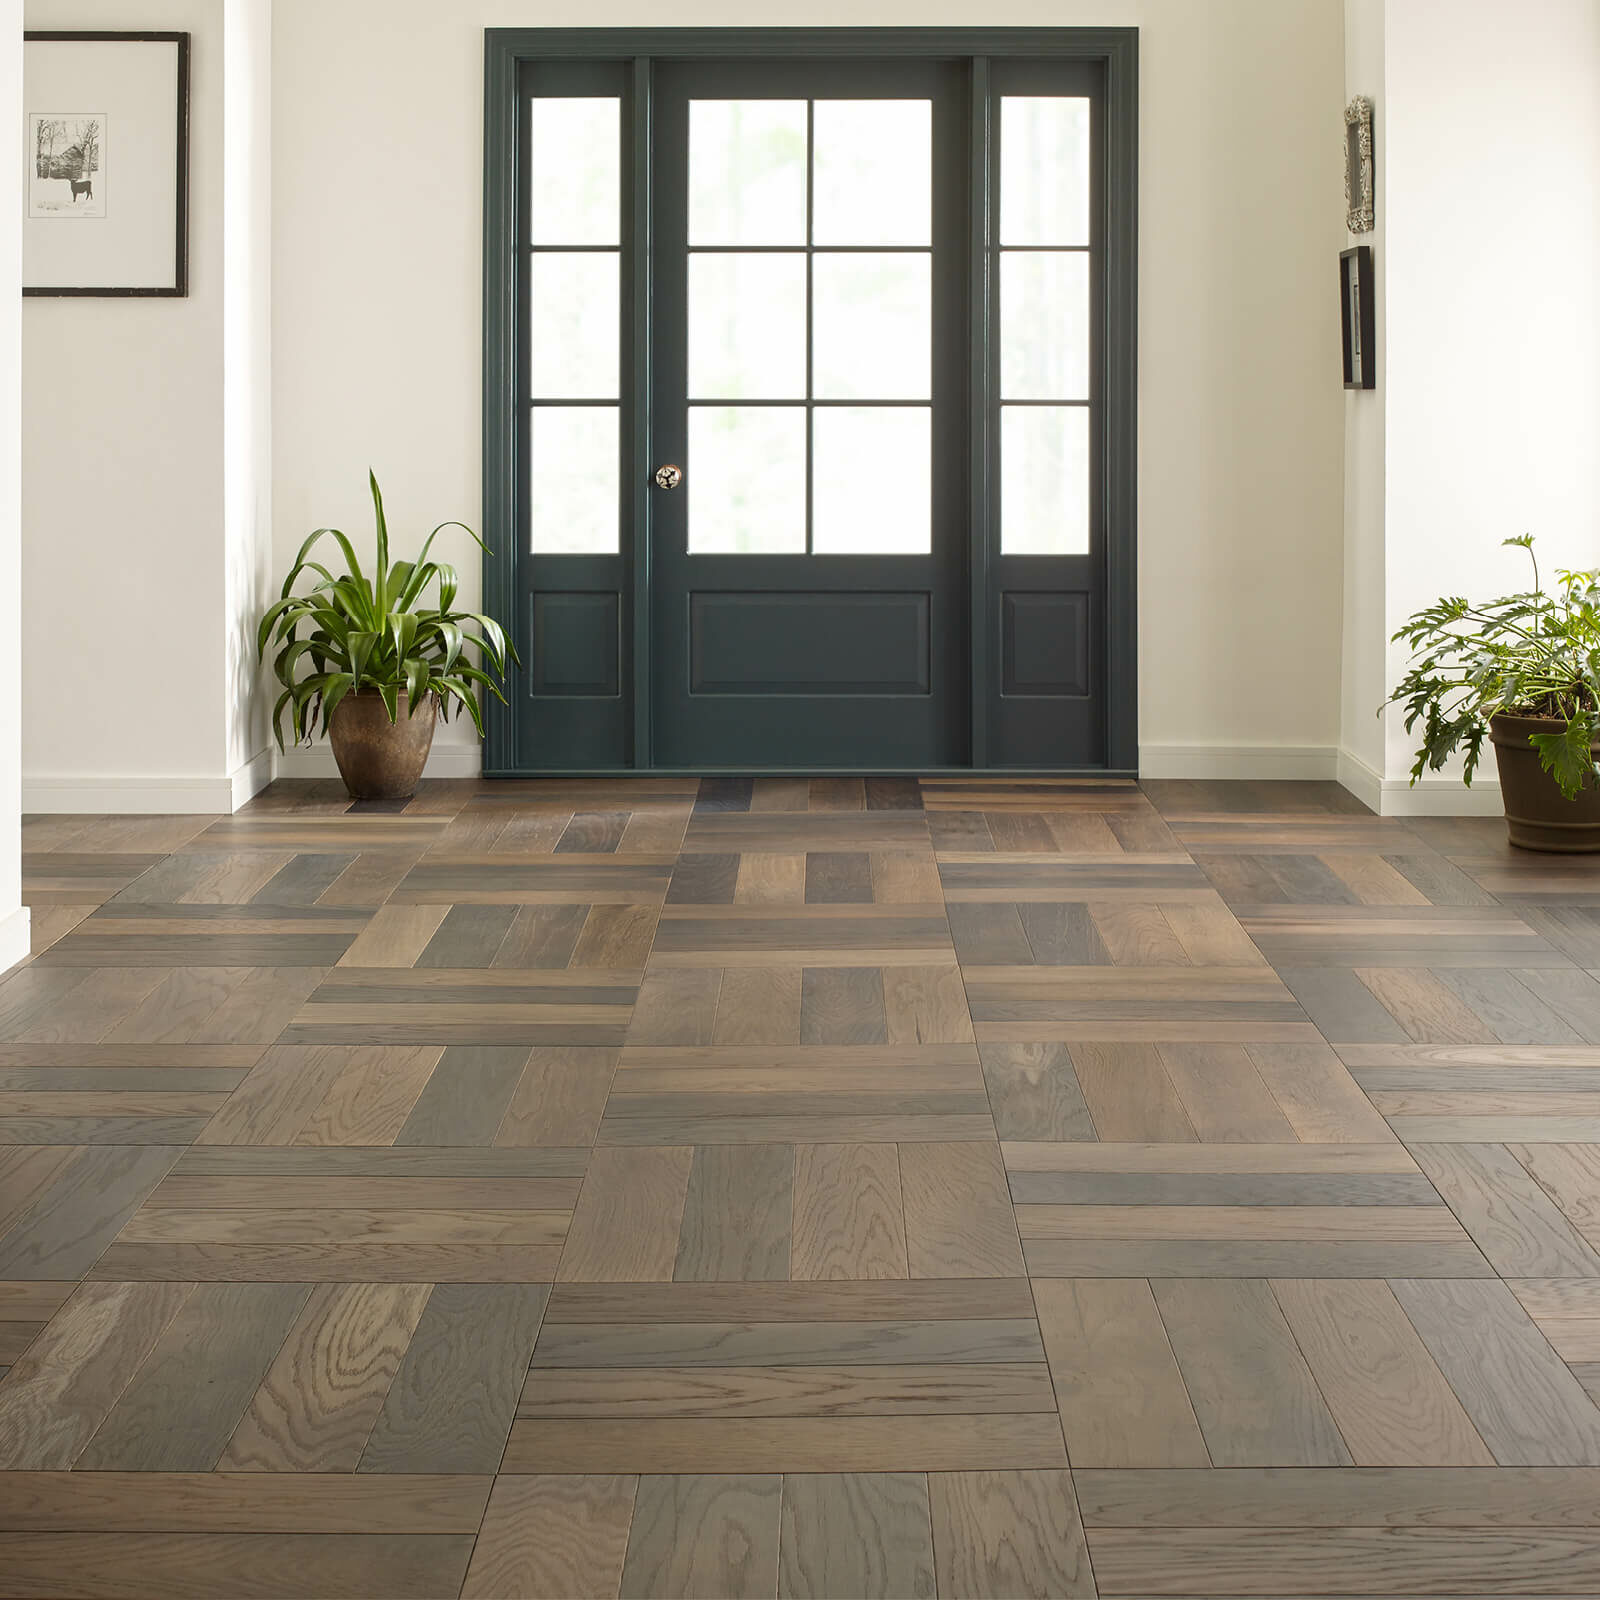 Hardwood Flooring in living room | Vic's Carpet & Flooring